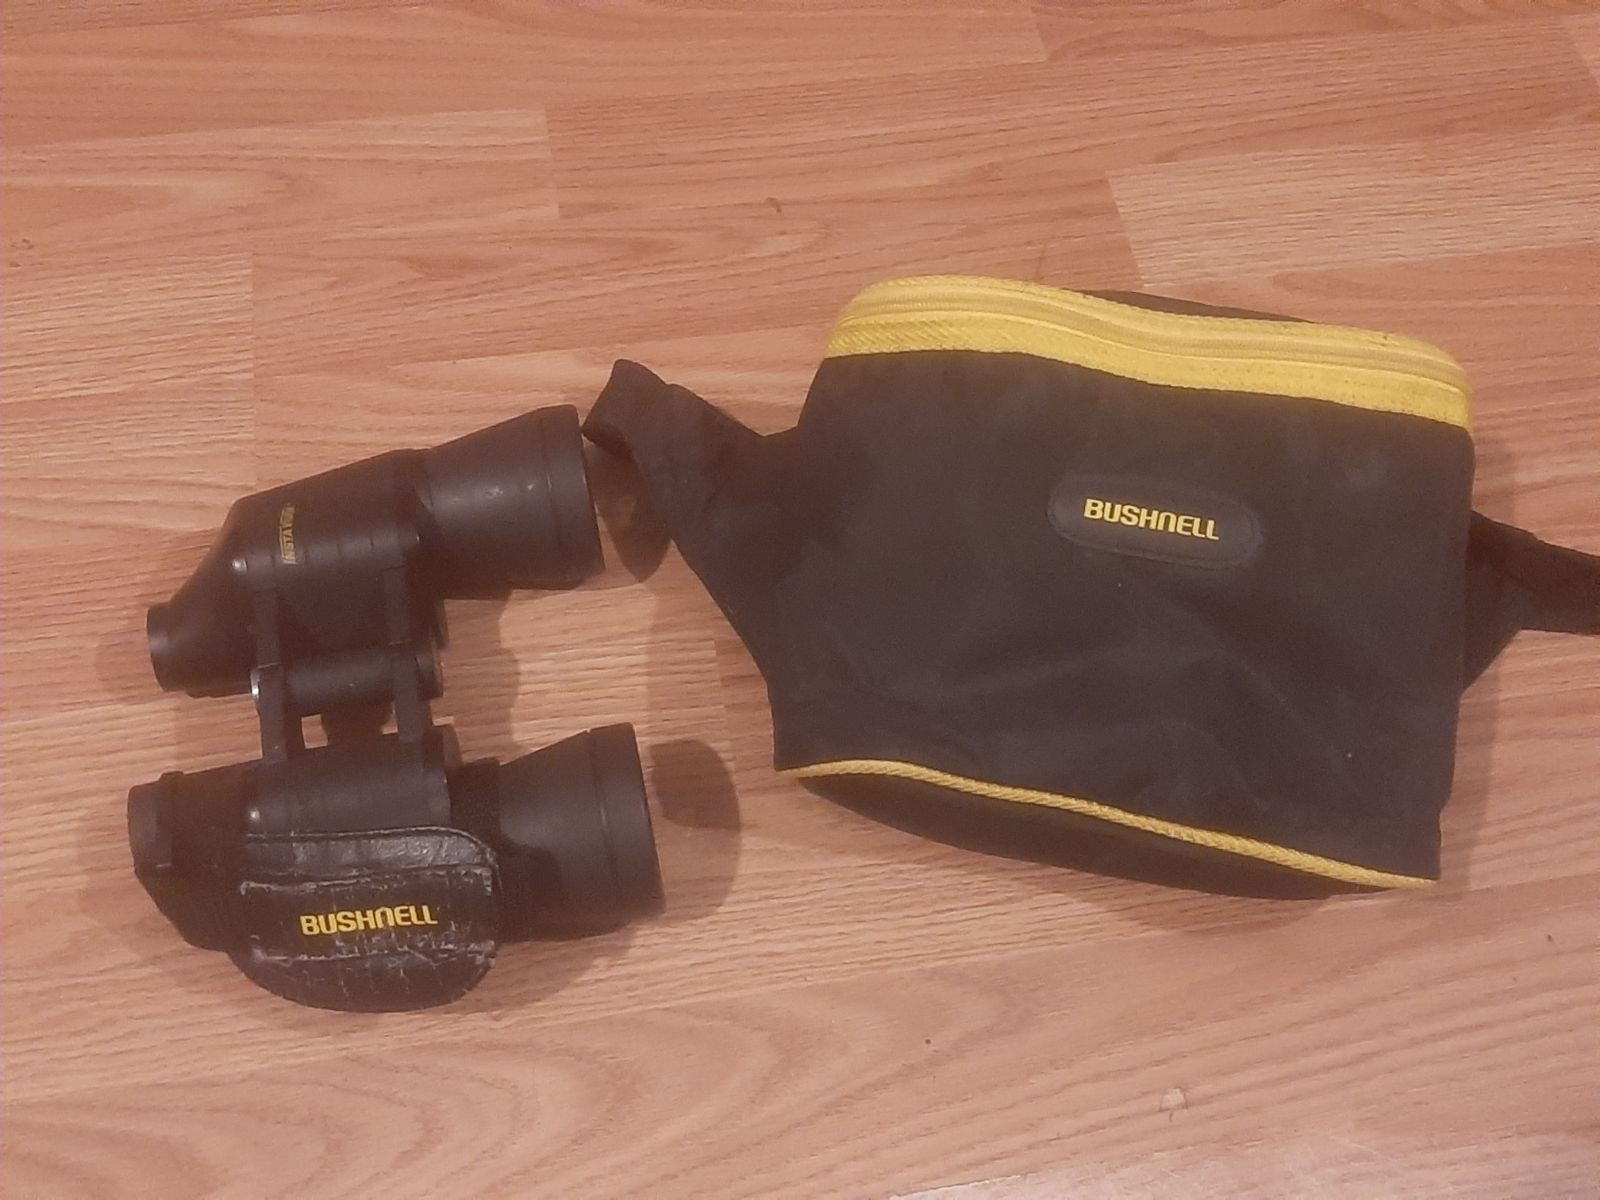 Bushnell Binoculars with bag